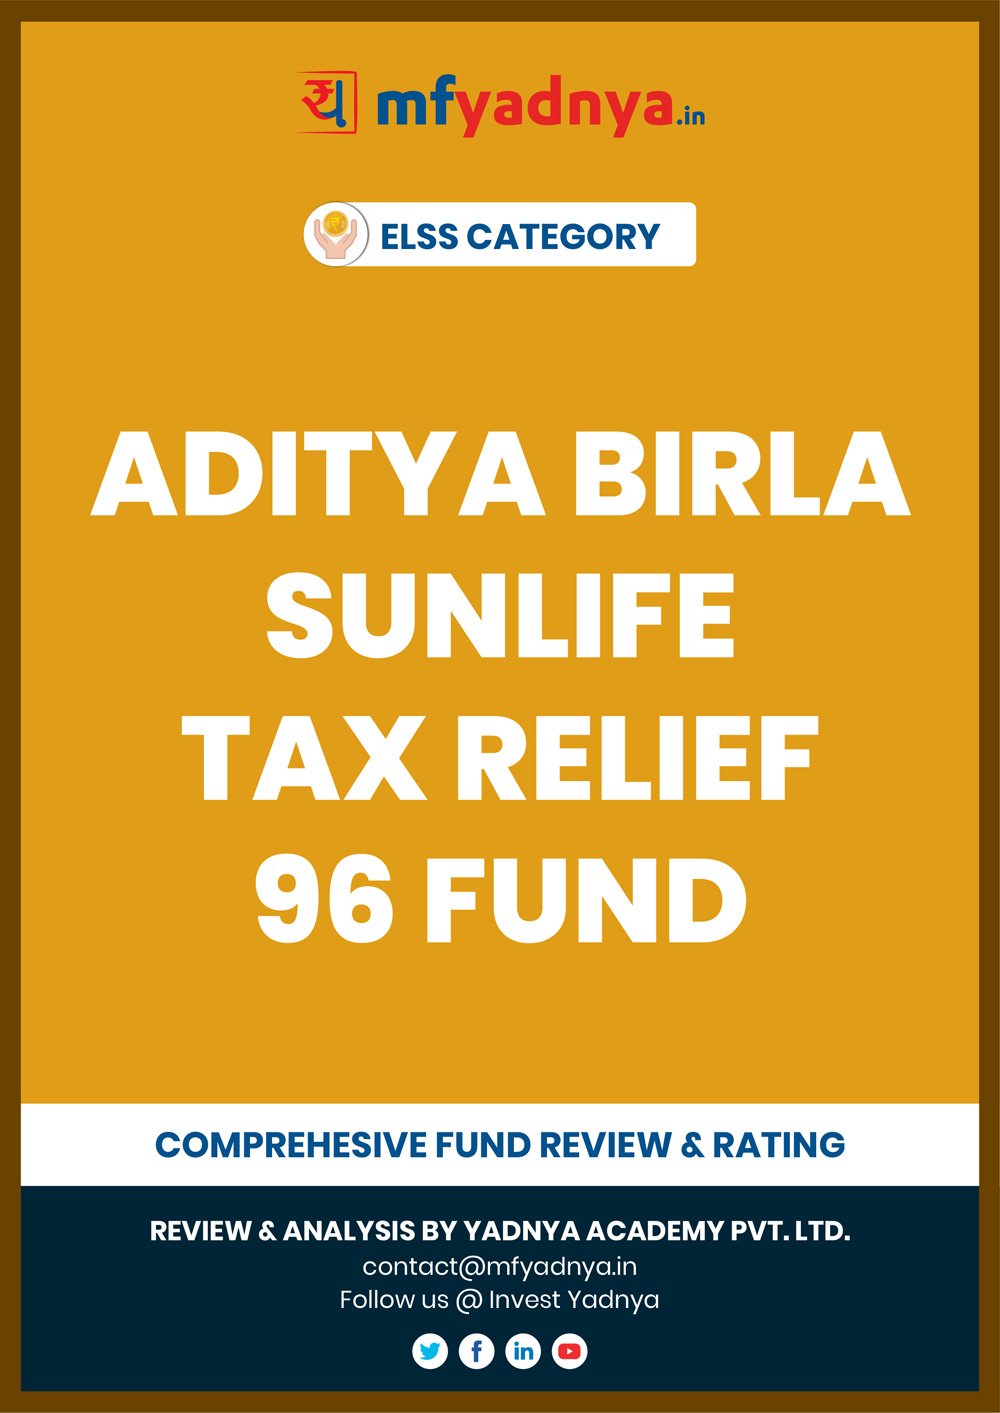 ELSS (Tax Saver) Category - Aditya Birla Sunlife Tax Relief 96 Fund Detailed Analysis & Review based on July 31st, 2019 data. Most Comprehensive and detailed review based on Yadnya's proprietary methodology of Green, Yellow & Red Star.